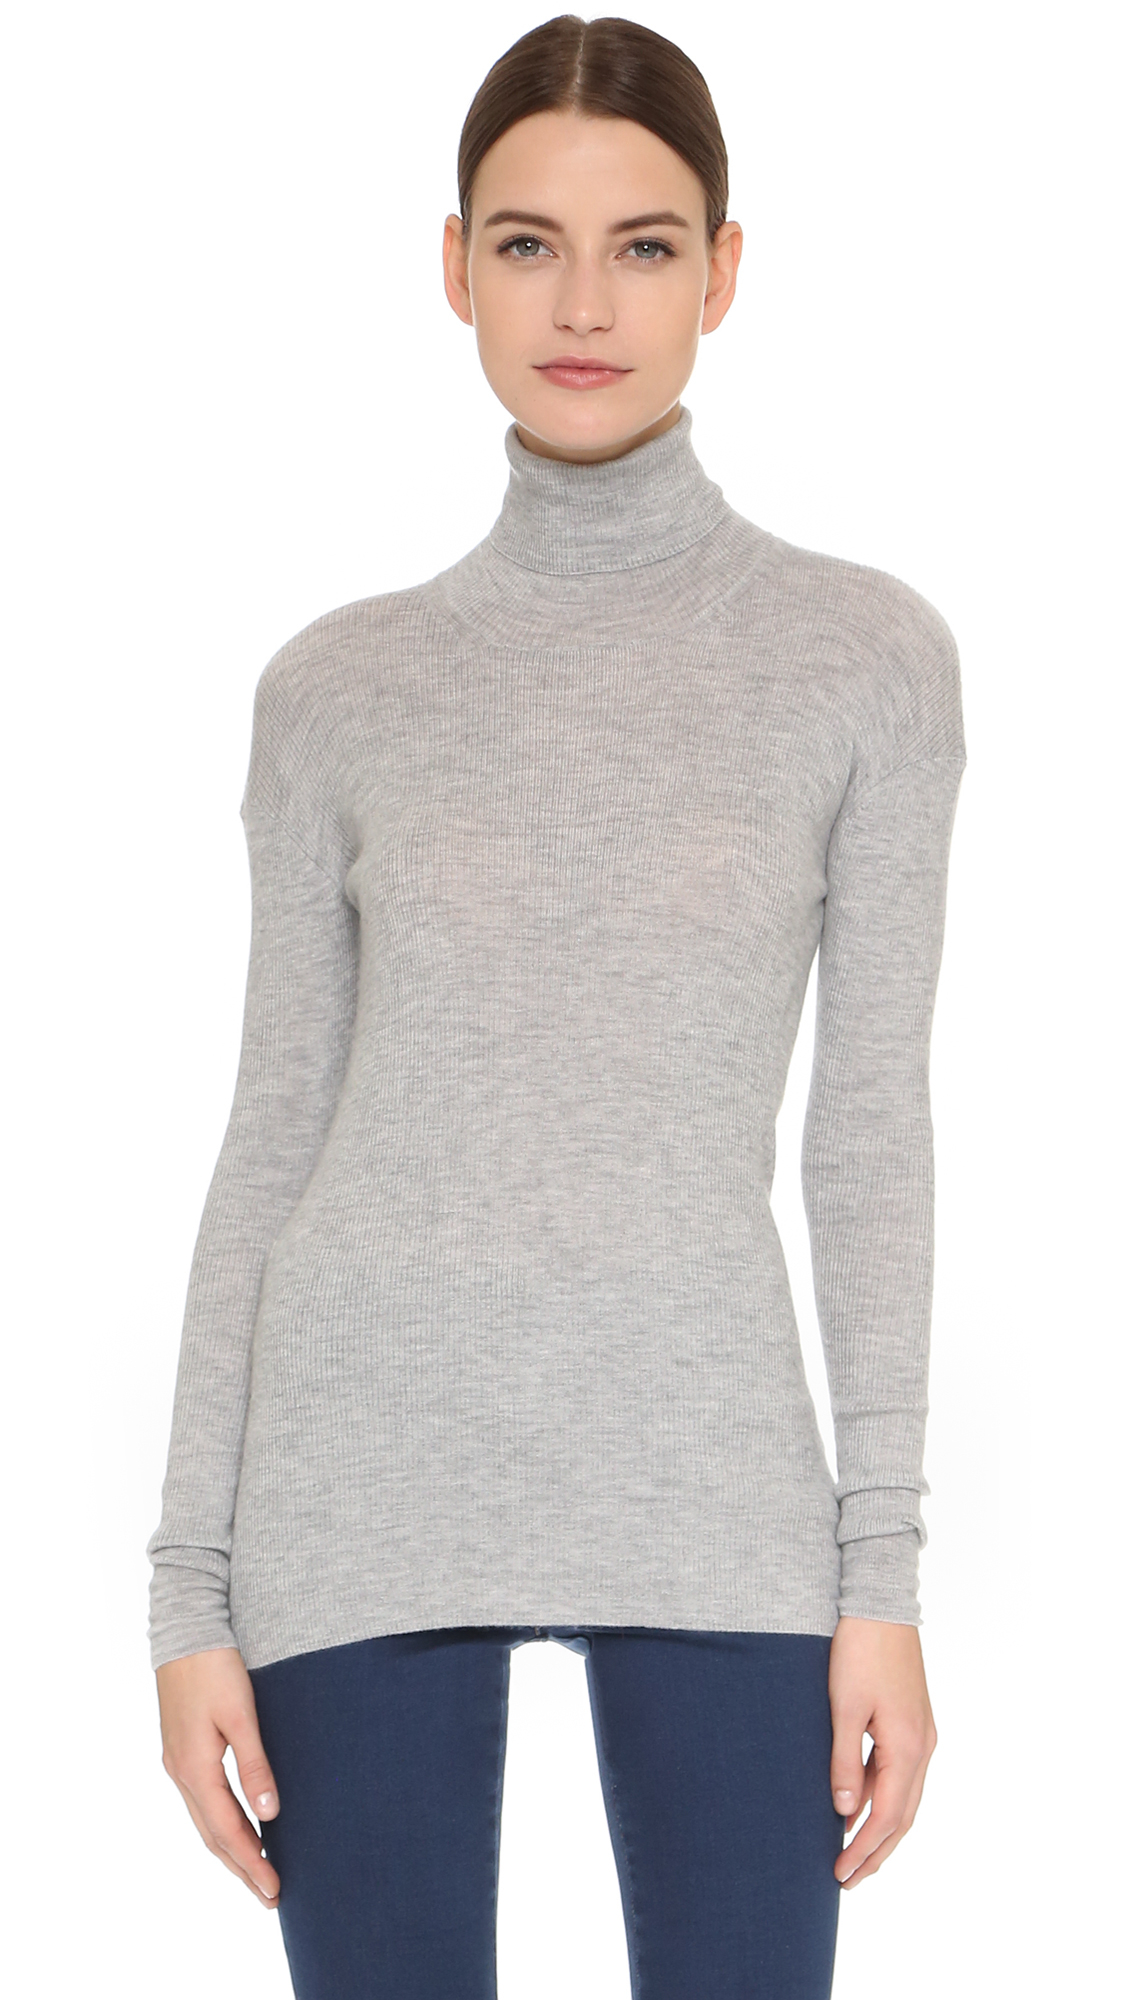 Maiyet Cashmere Turtleneck Sweater in Gray | Lyst